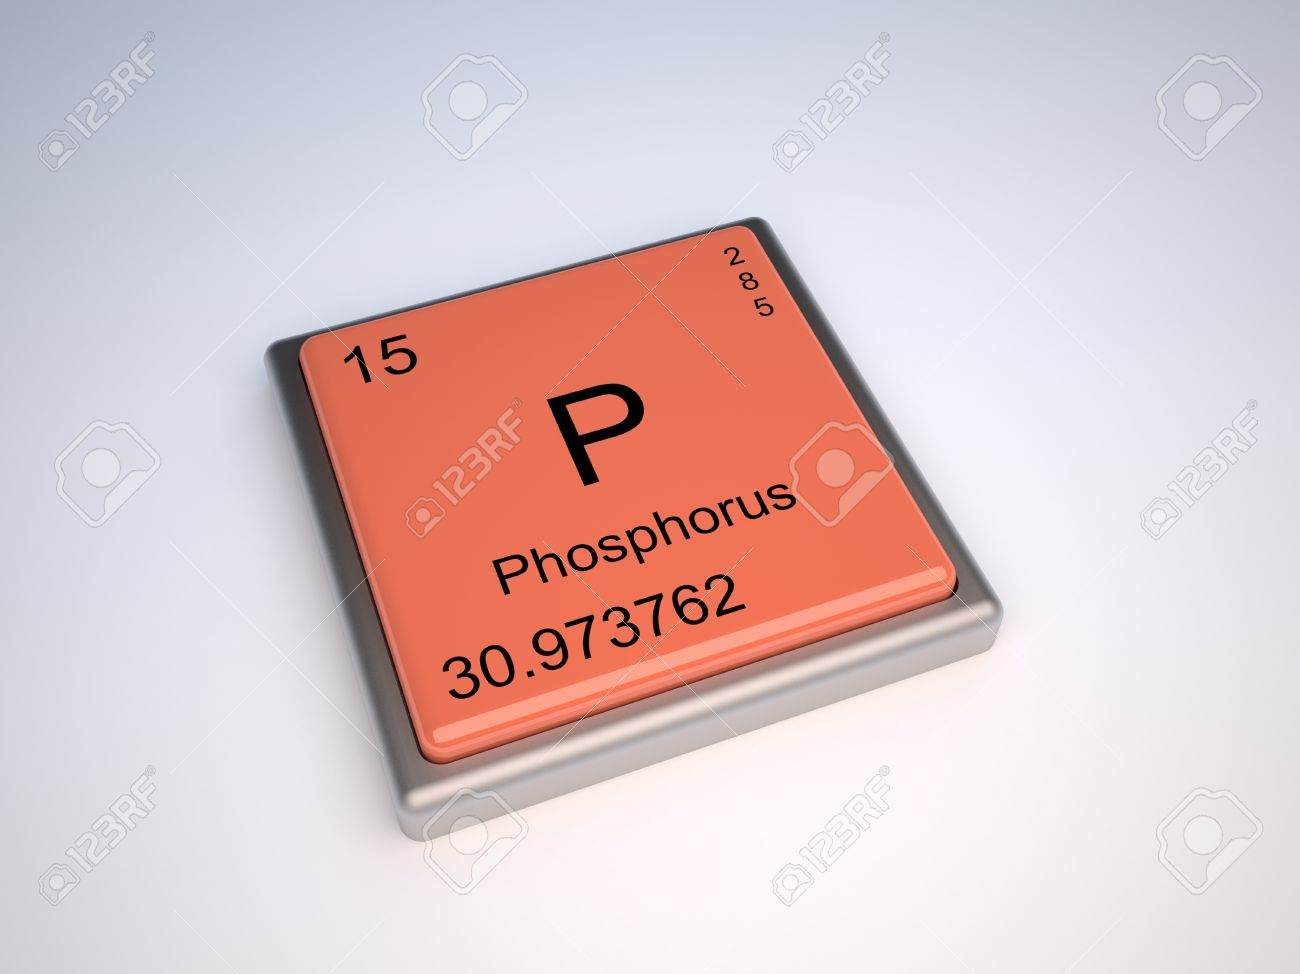 Phosphorus chemical element of the periodic table with symbol phosphorus chemical element of the periodic table with symbol p stock photo 9257140 gamestrikefo Image collections